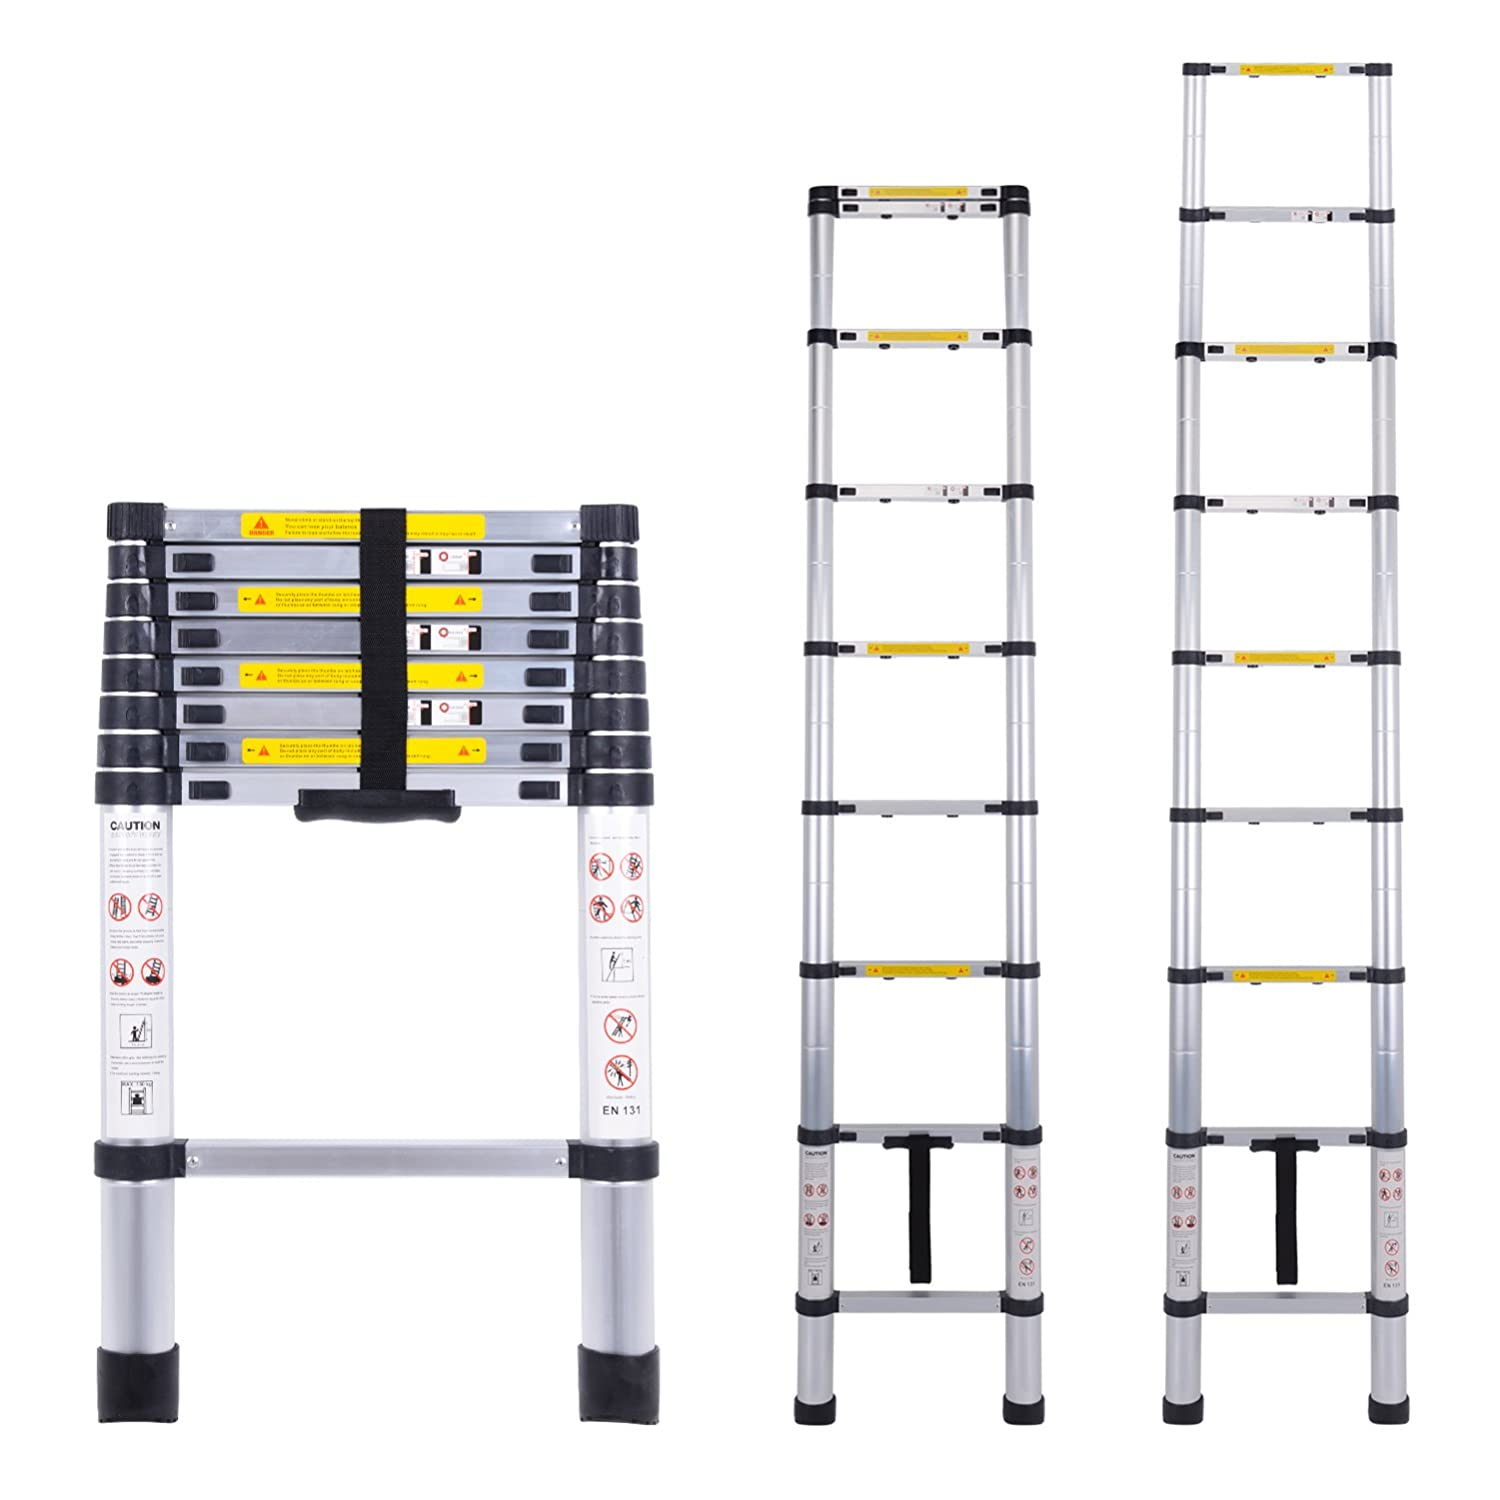 Telescopic Ladder Multi-Purpose Aluminium Telescoping Ladder Extension Extend Portable Ladder Foldable Ladder EN131 and CE Standards (3.2M/10.5Ft) by Myifan